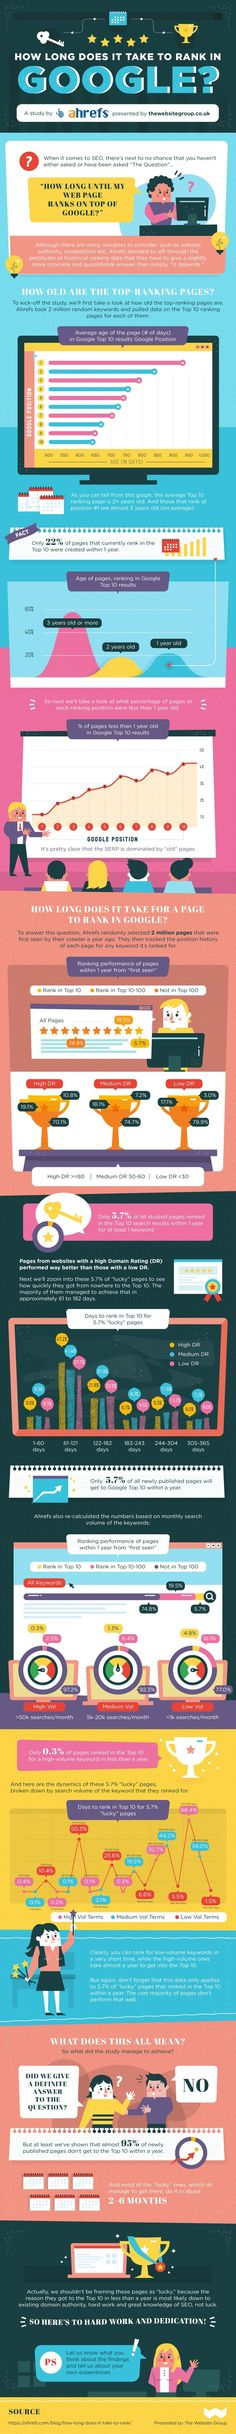 How Long Does it Take to Rank in Google? [Infographic] | Social Media Today